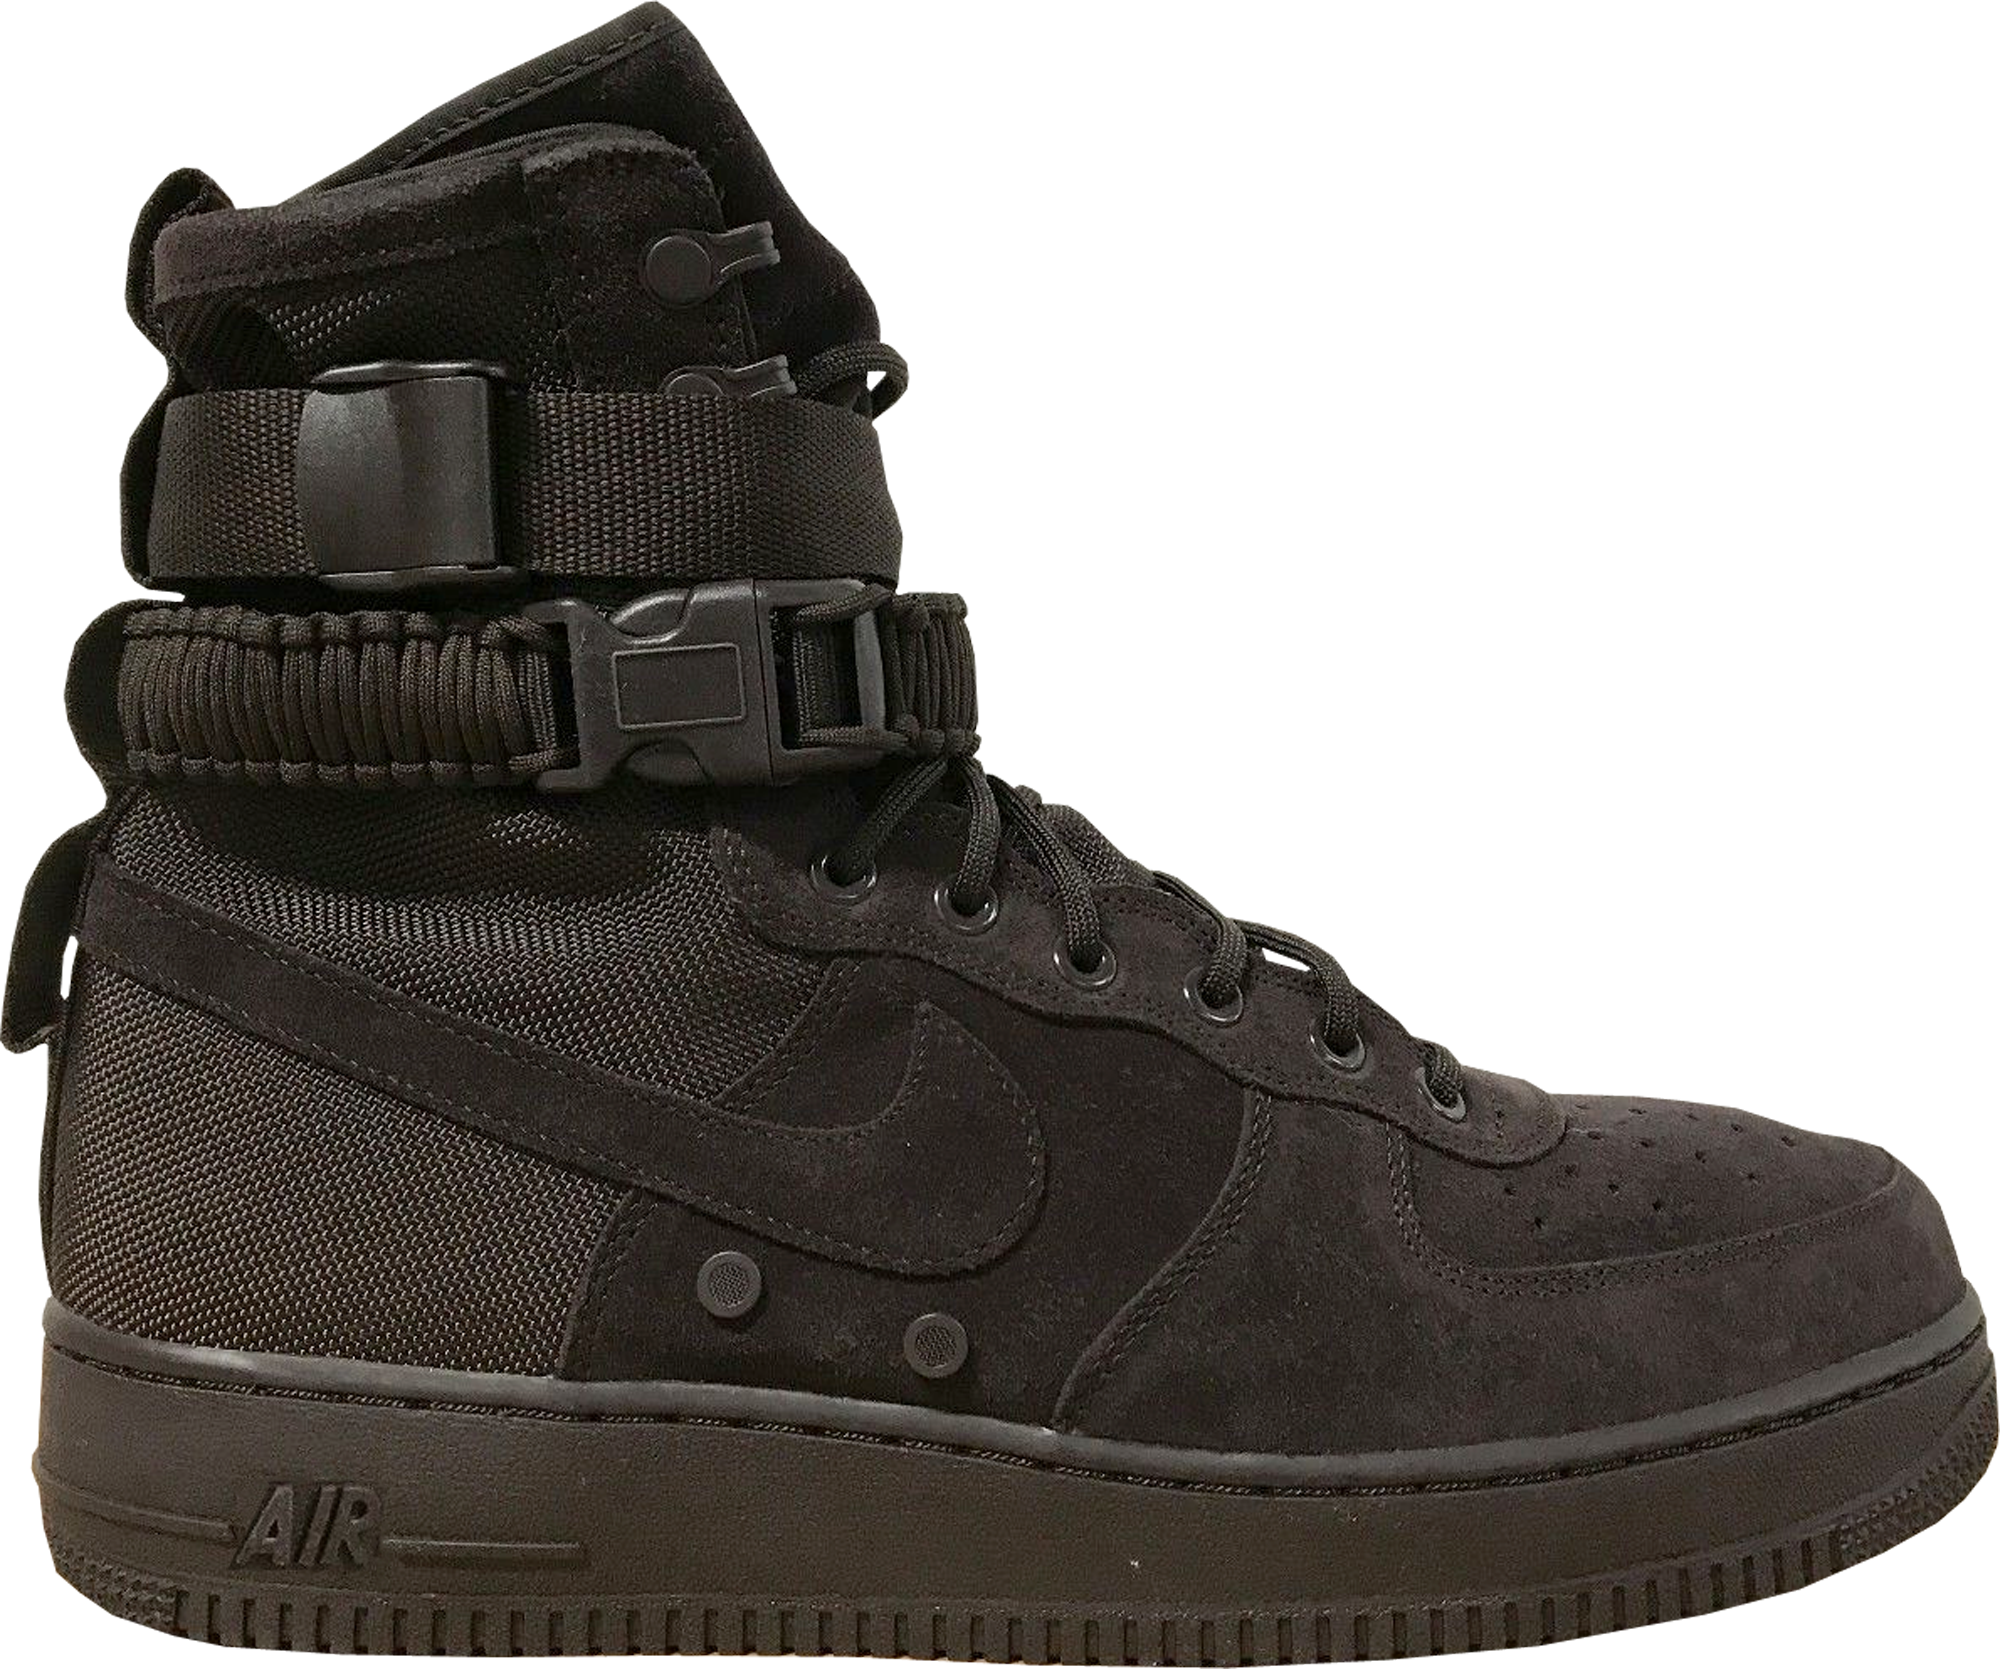 nike air force 1 high sf shoes wholesale. Black Bedroom Furniture Sets. Home Design Ideas